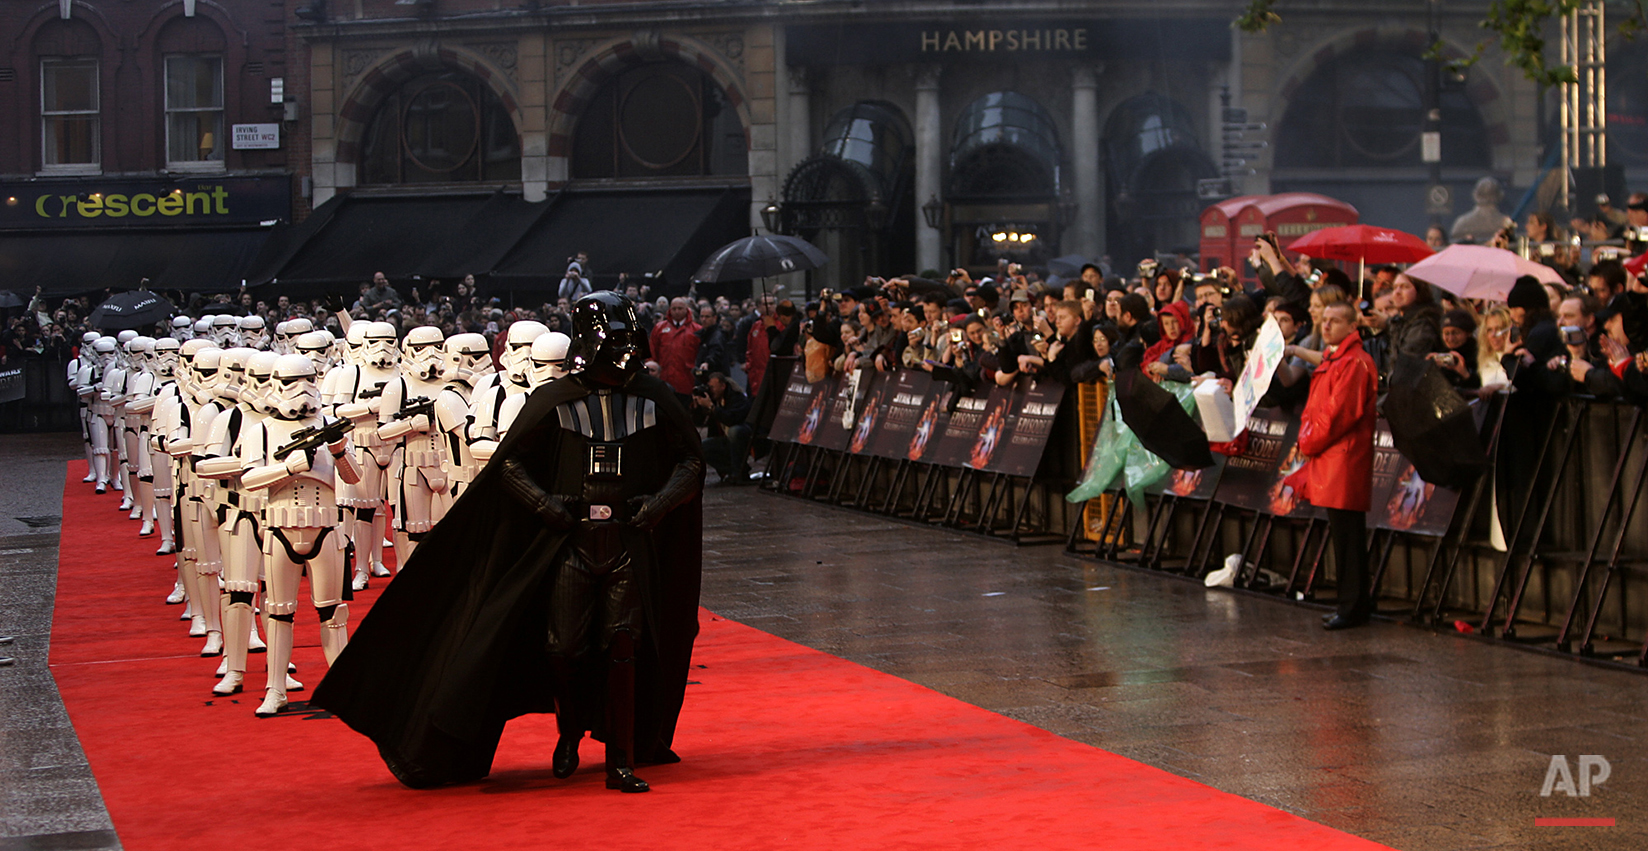 "Characters from the 'Star Wars' movies, including Darth Vader and stormtroopers, parade at the premiere of ""Star Wars Episode III, Revenge of The Sith"", at Leicester Square in London, England, Monday, May. 16, 2005. The film, by U.S. director George Lucas, is the last in the 'Star Wars' series. (AP Photo/Lefteris Pitarakis)"